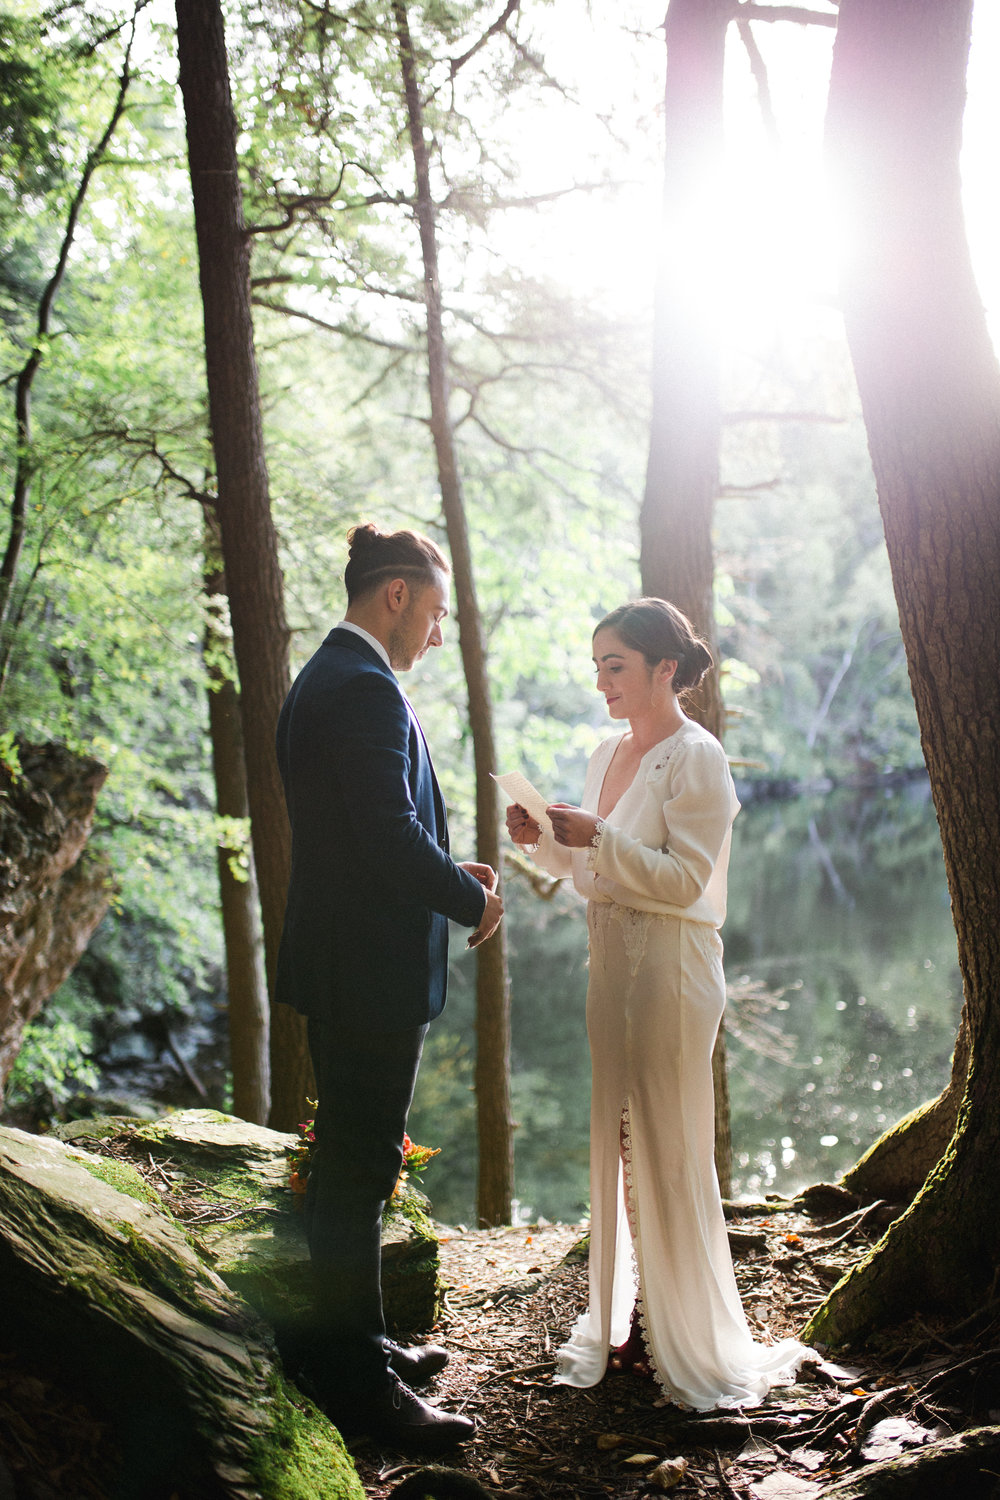 Massachusetts Woods Elopement_meg haley photographs_003.jpg